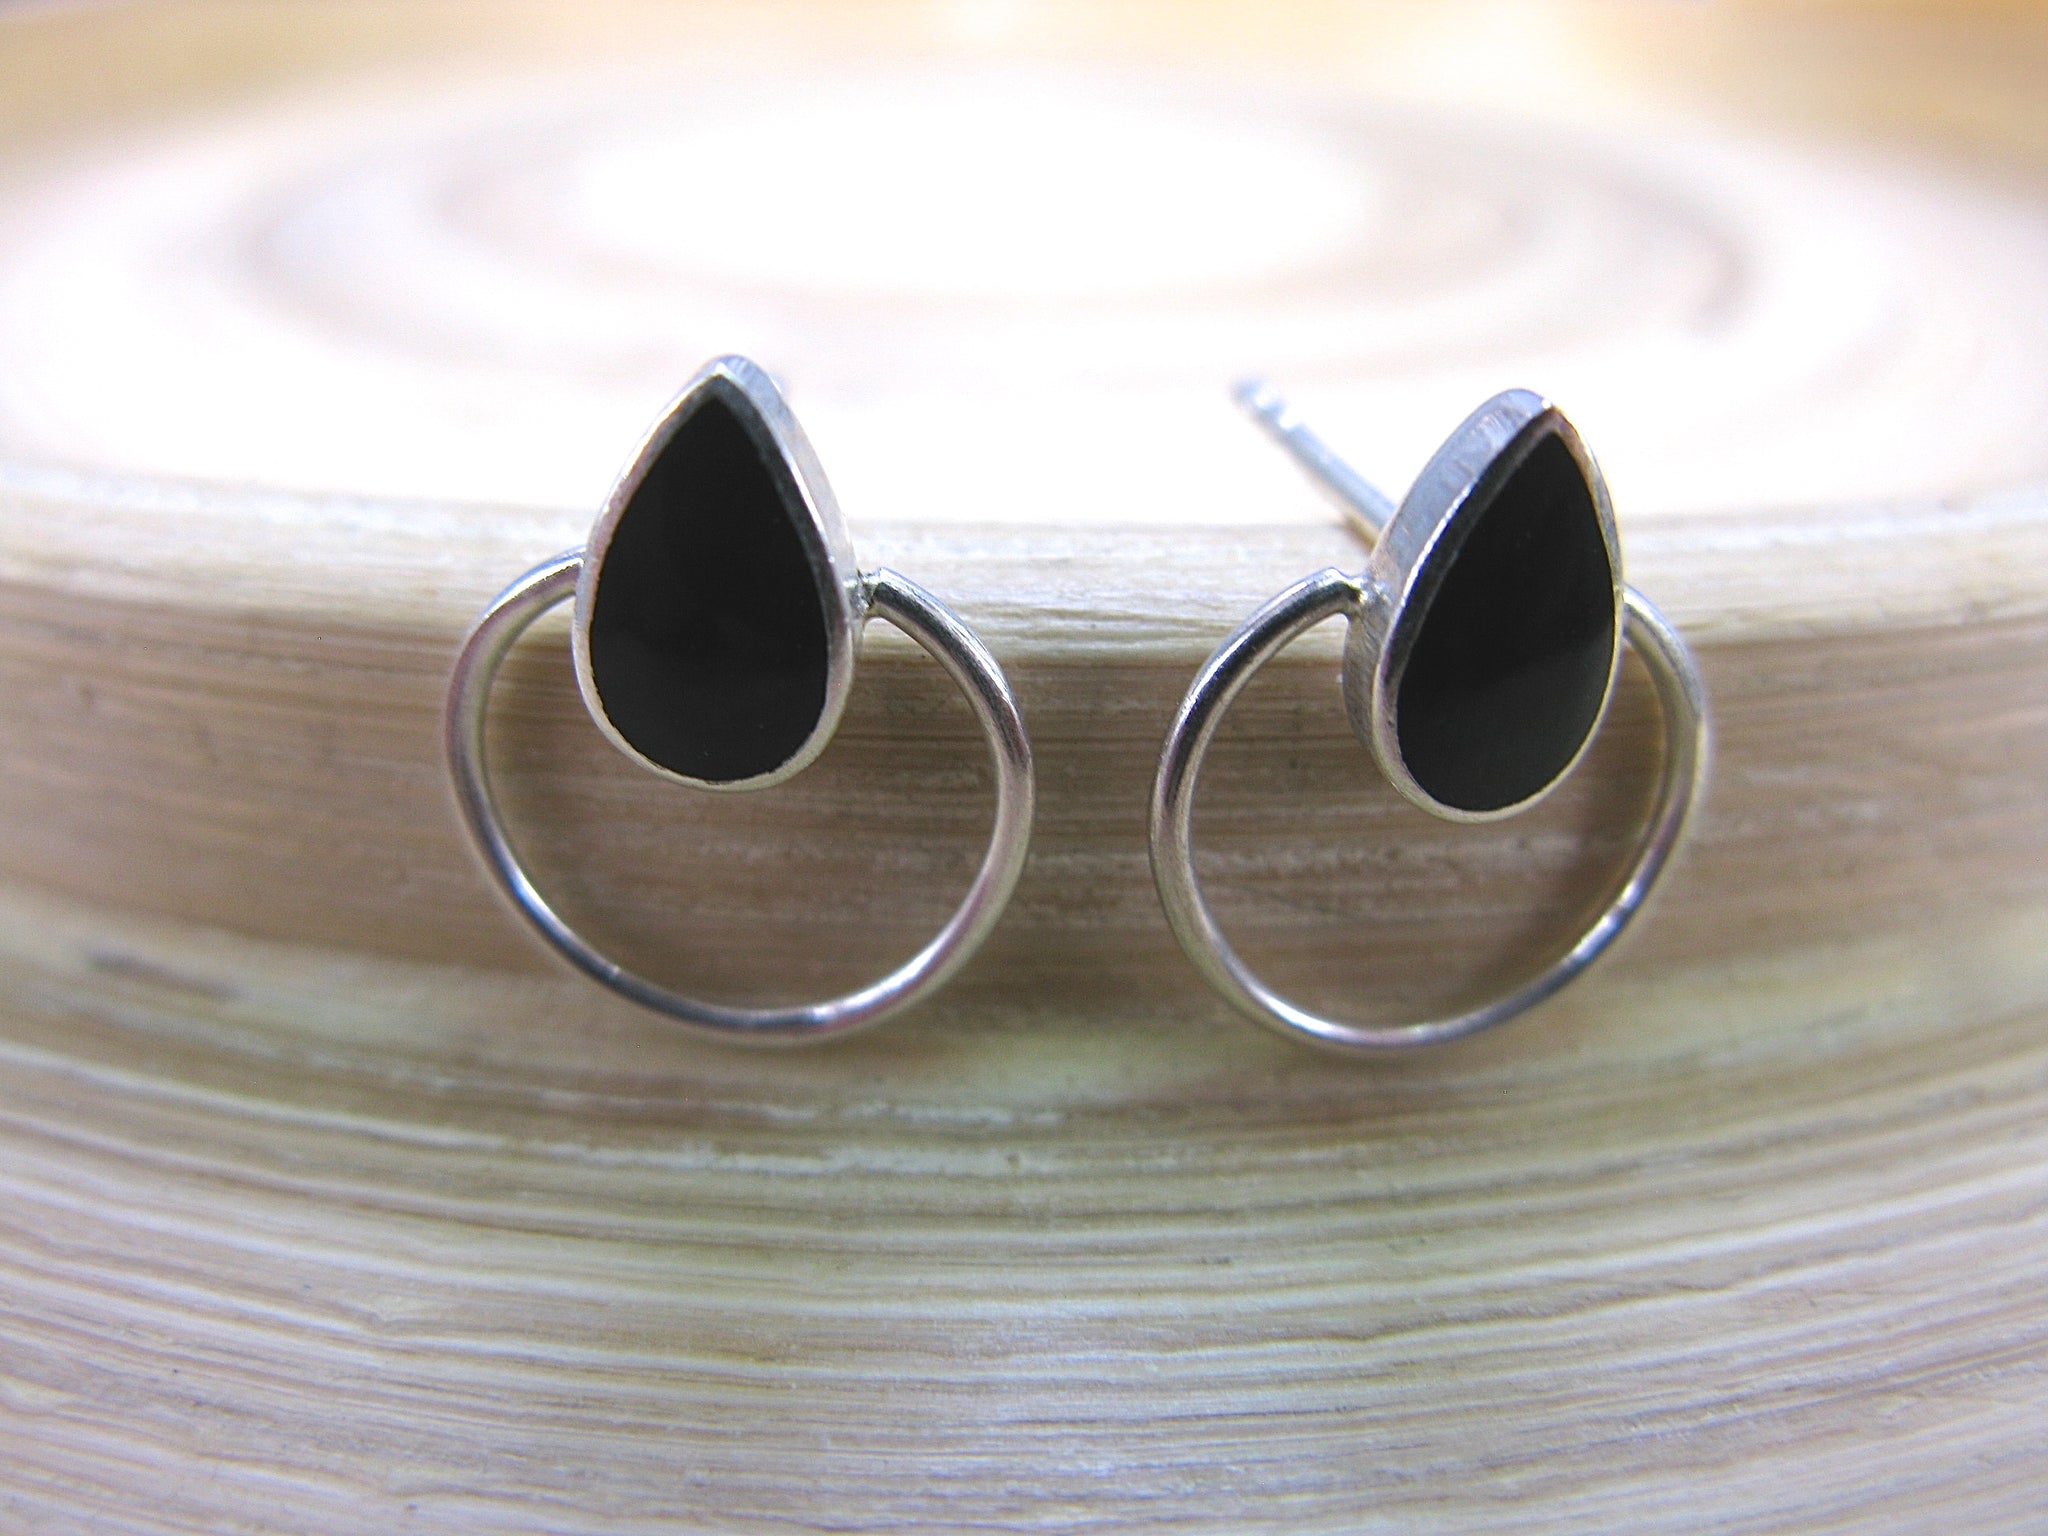 Onyx Stud Earrings in 925 Sterling Silver